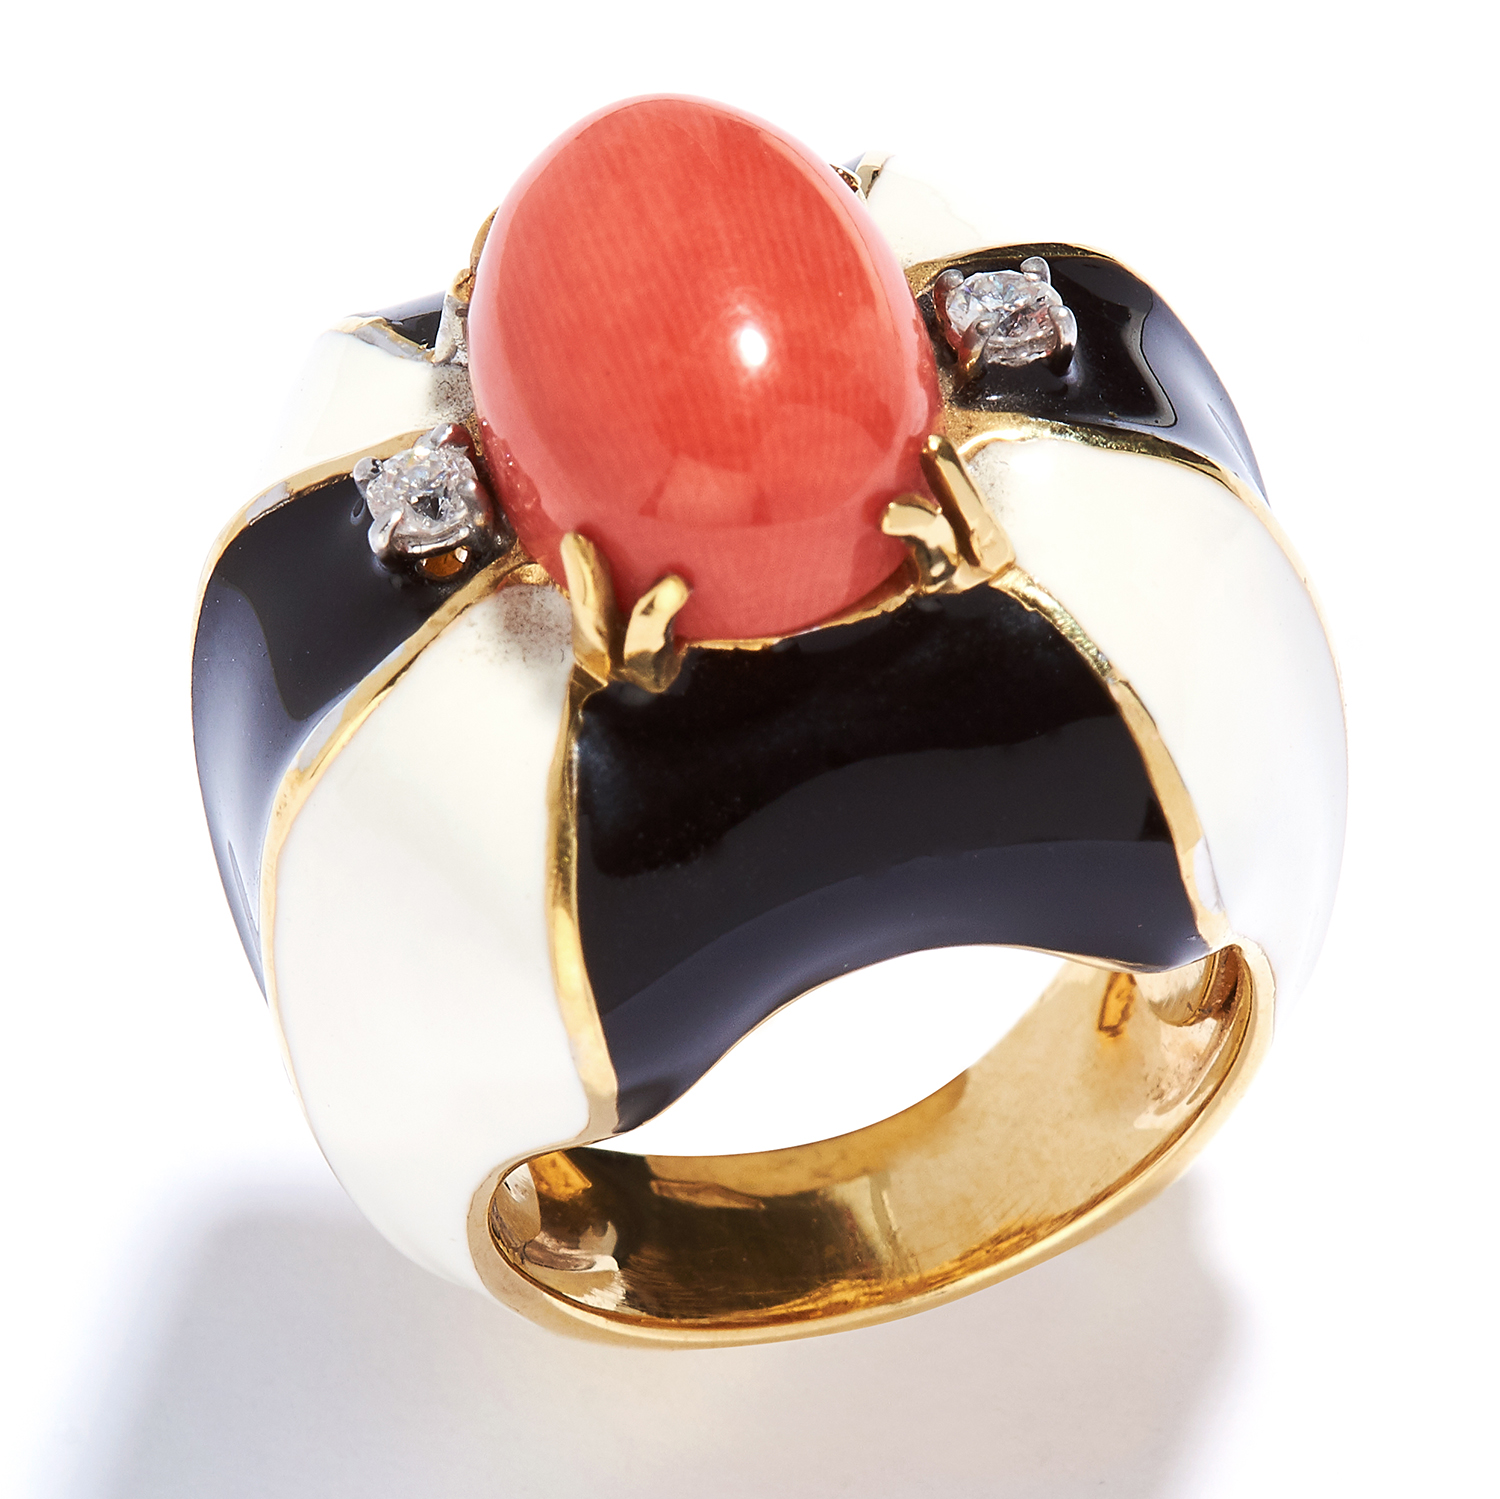 CORAL, DIAMOND AND ENAMEL RING in 18ct yellow gold, the oval coral cabochon within a border of